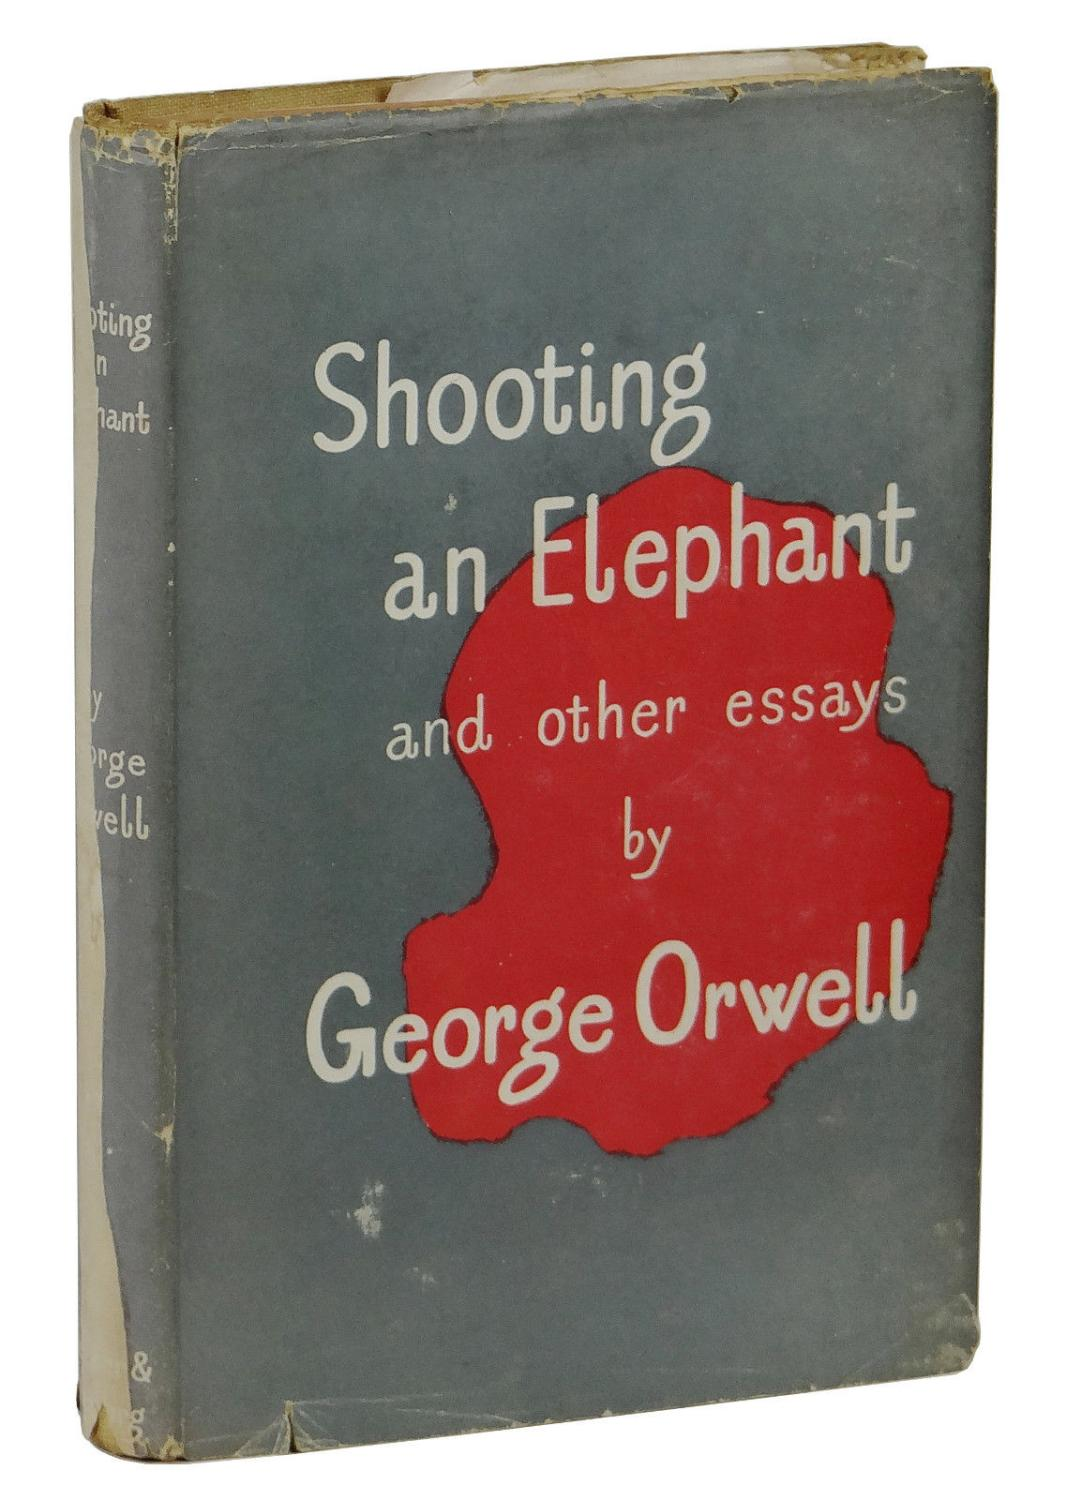 shooting an elephant and other essays secker and warburg 1950